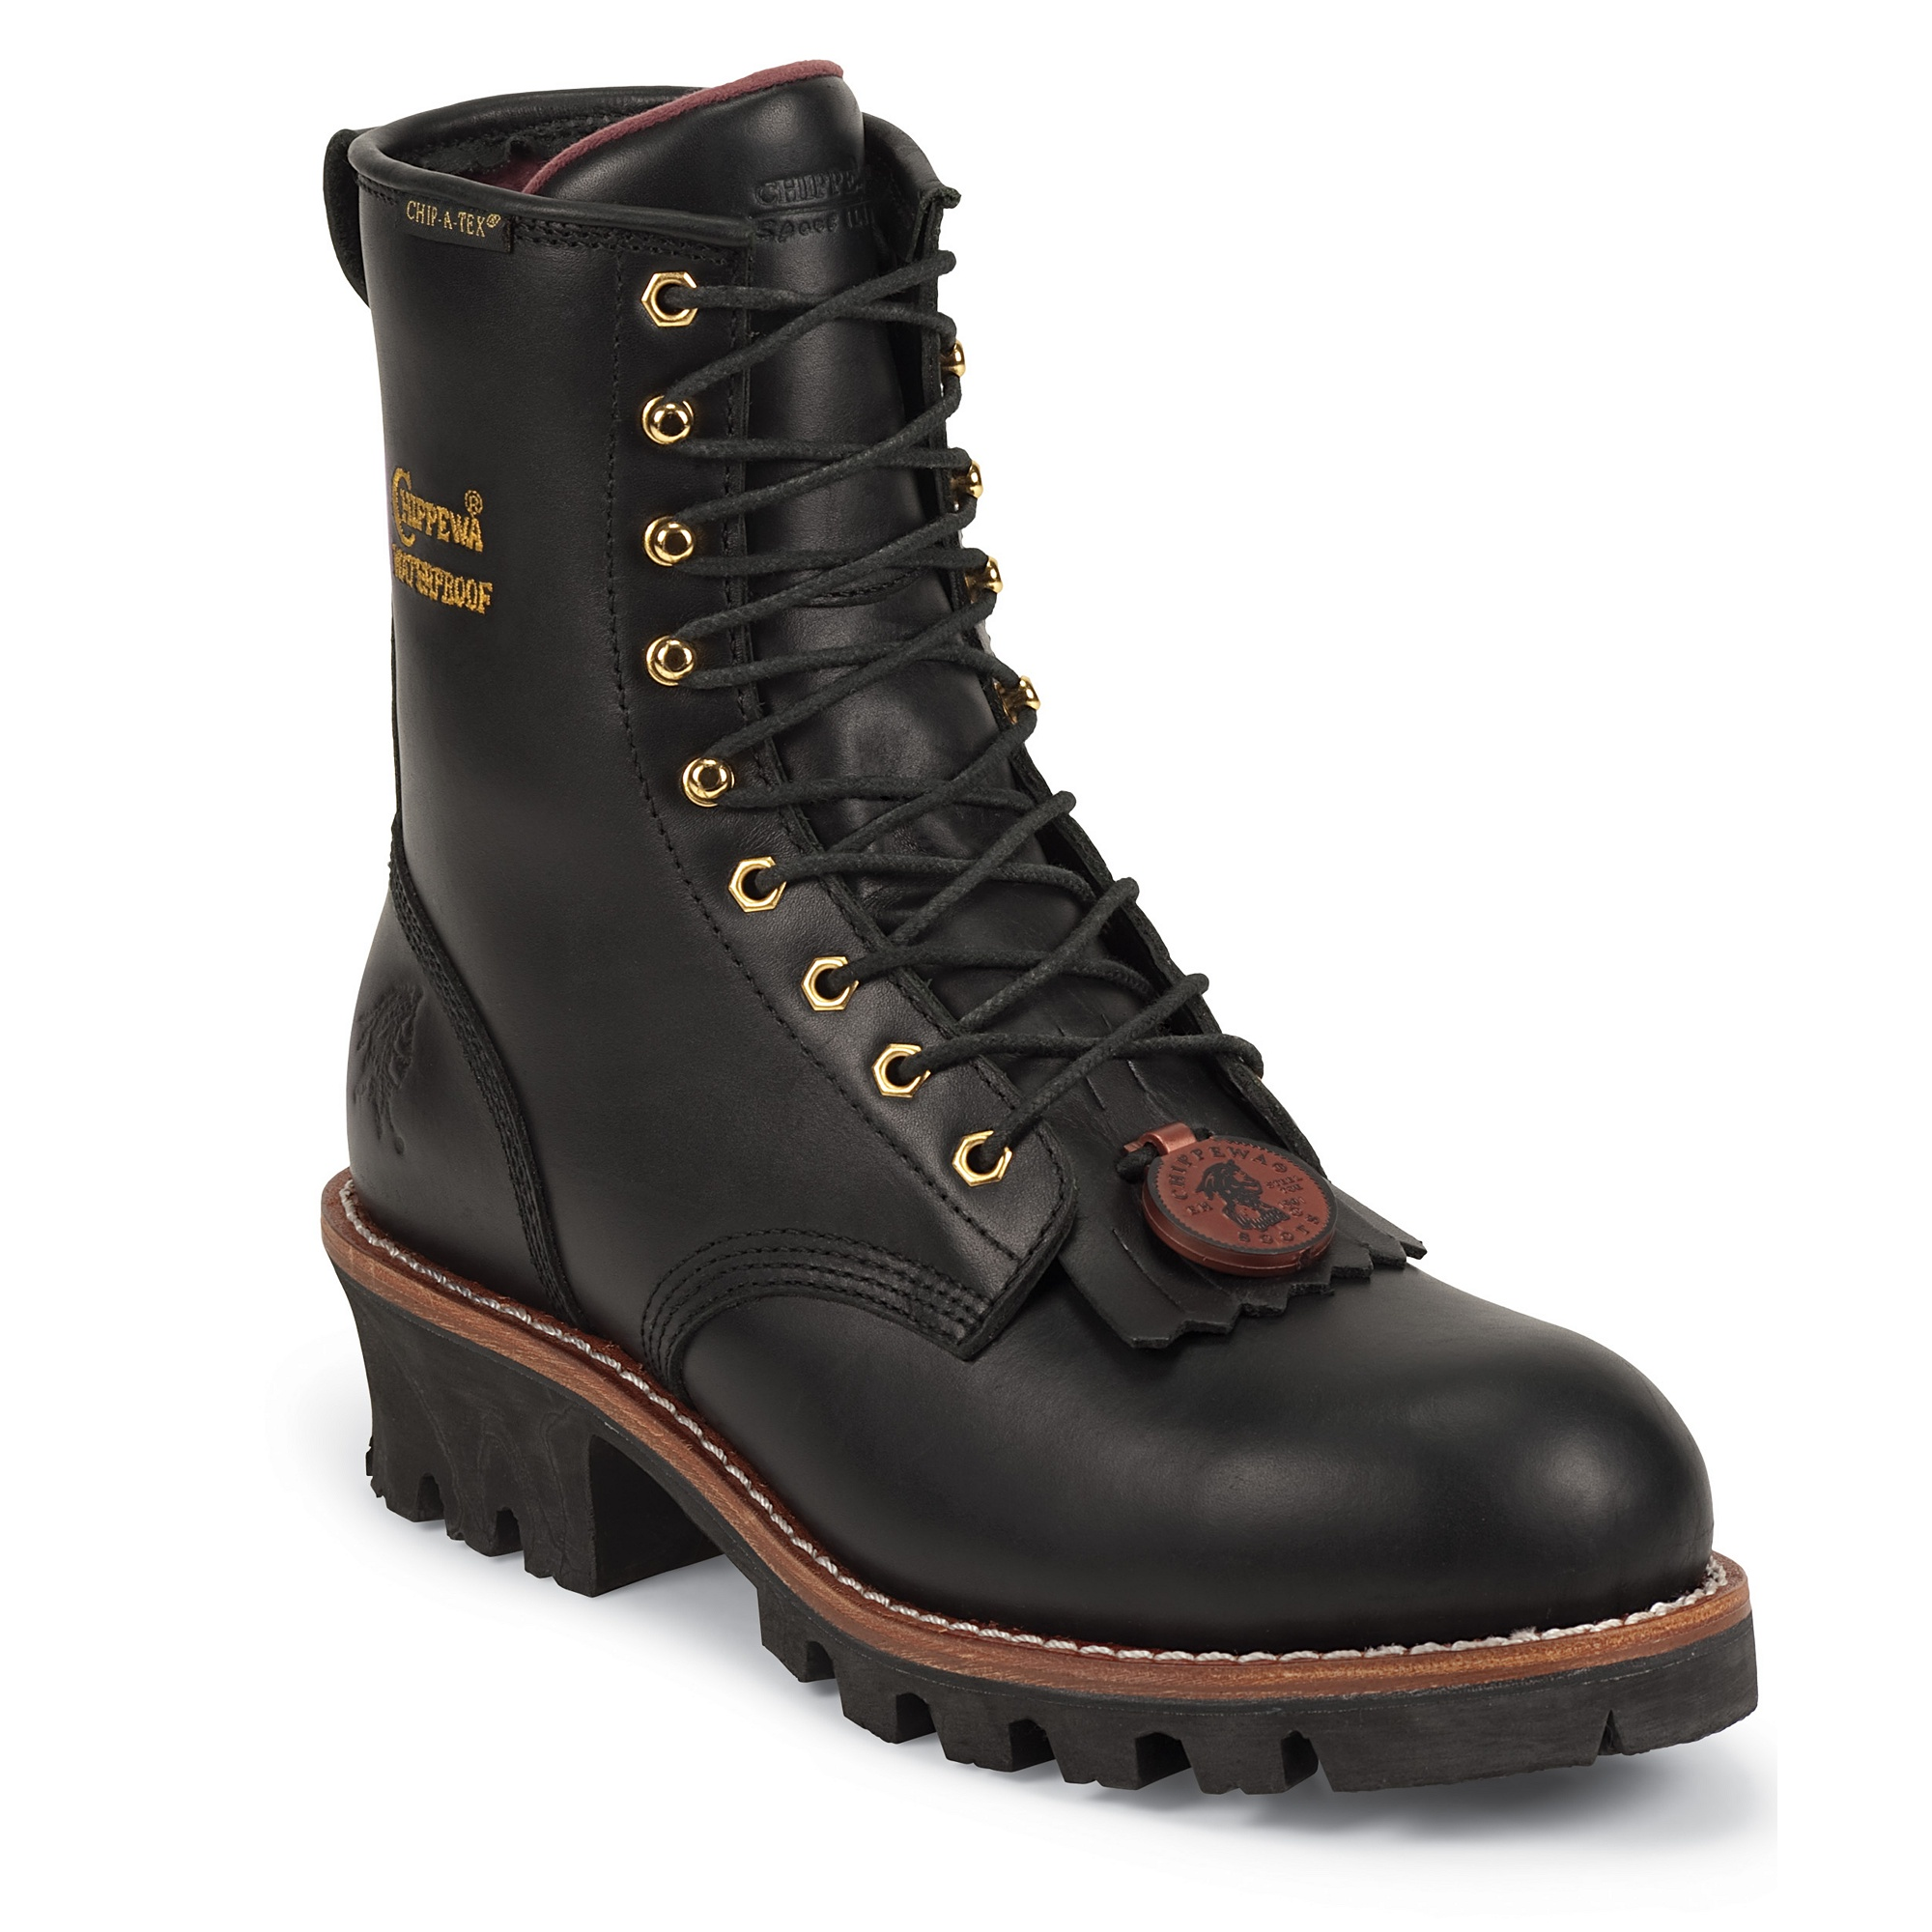 Chippewa 8-BLK Logger Plain Toe Insulated